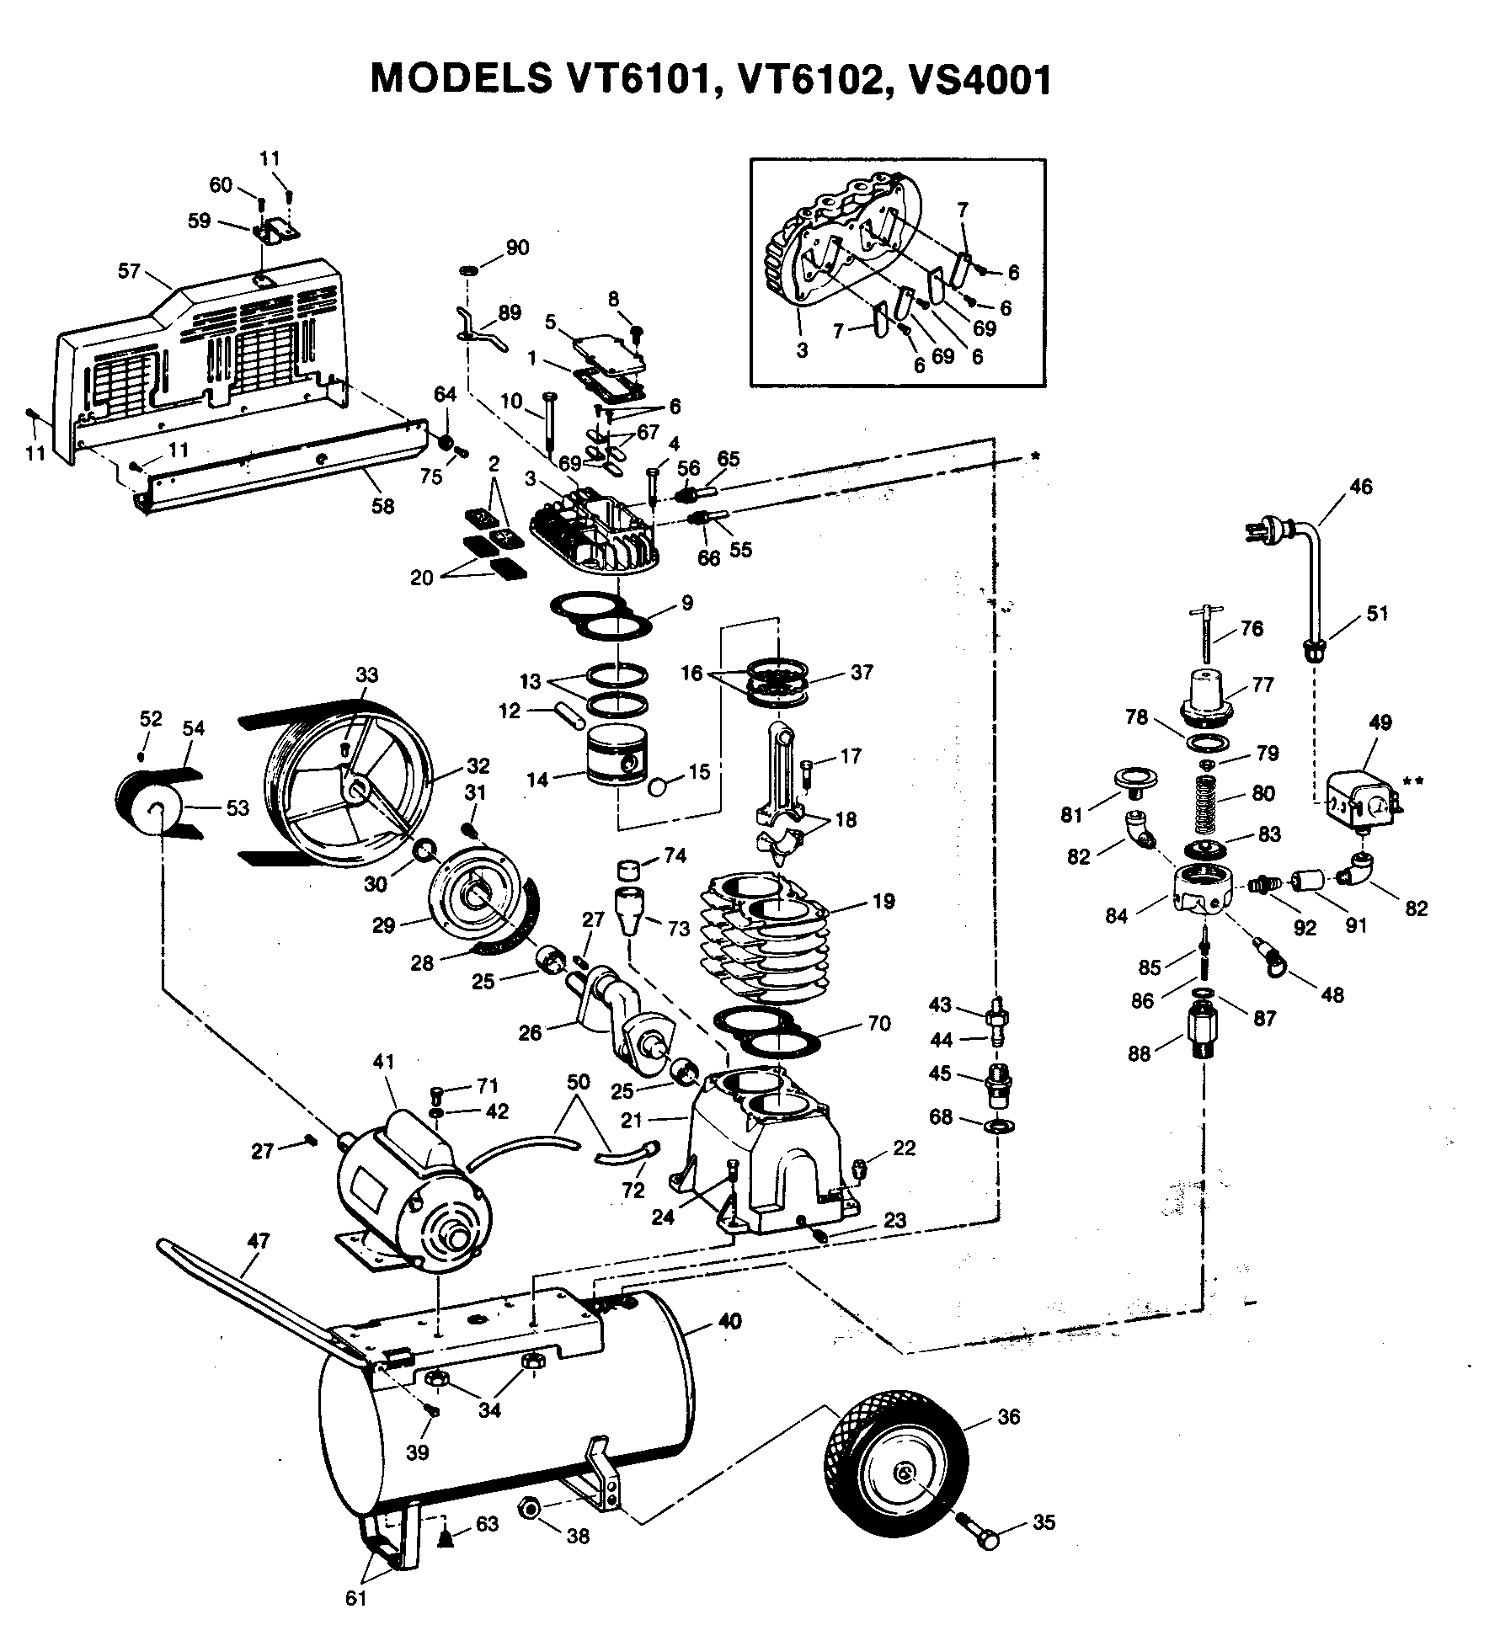 air compressor diagram and parts list for campbellhausfeld air